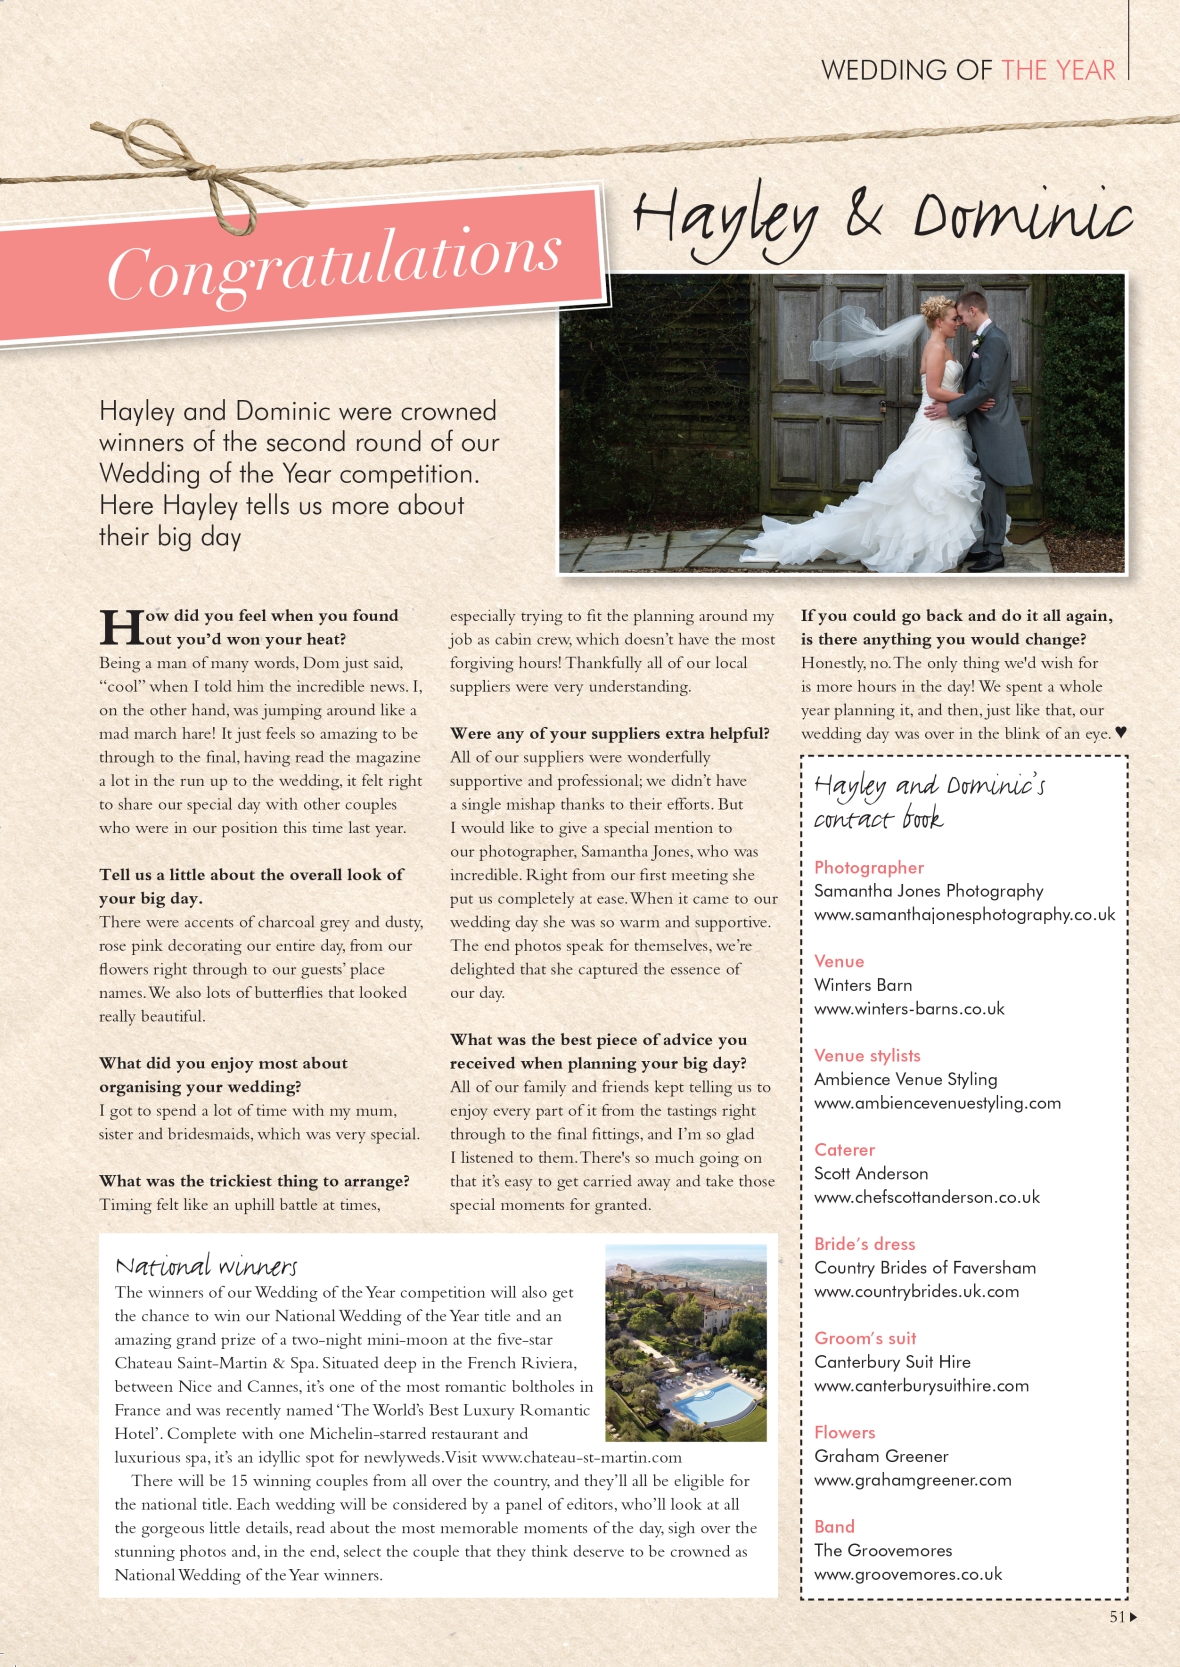 Hayley and Dominic Your Kent Wedding article